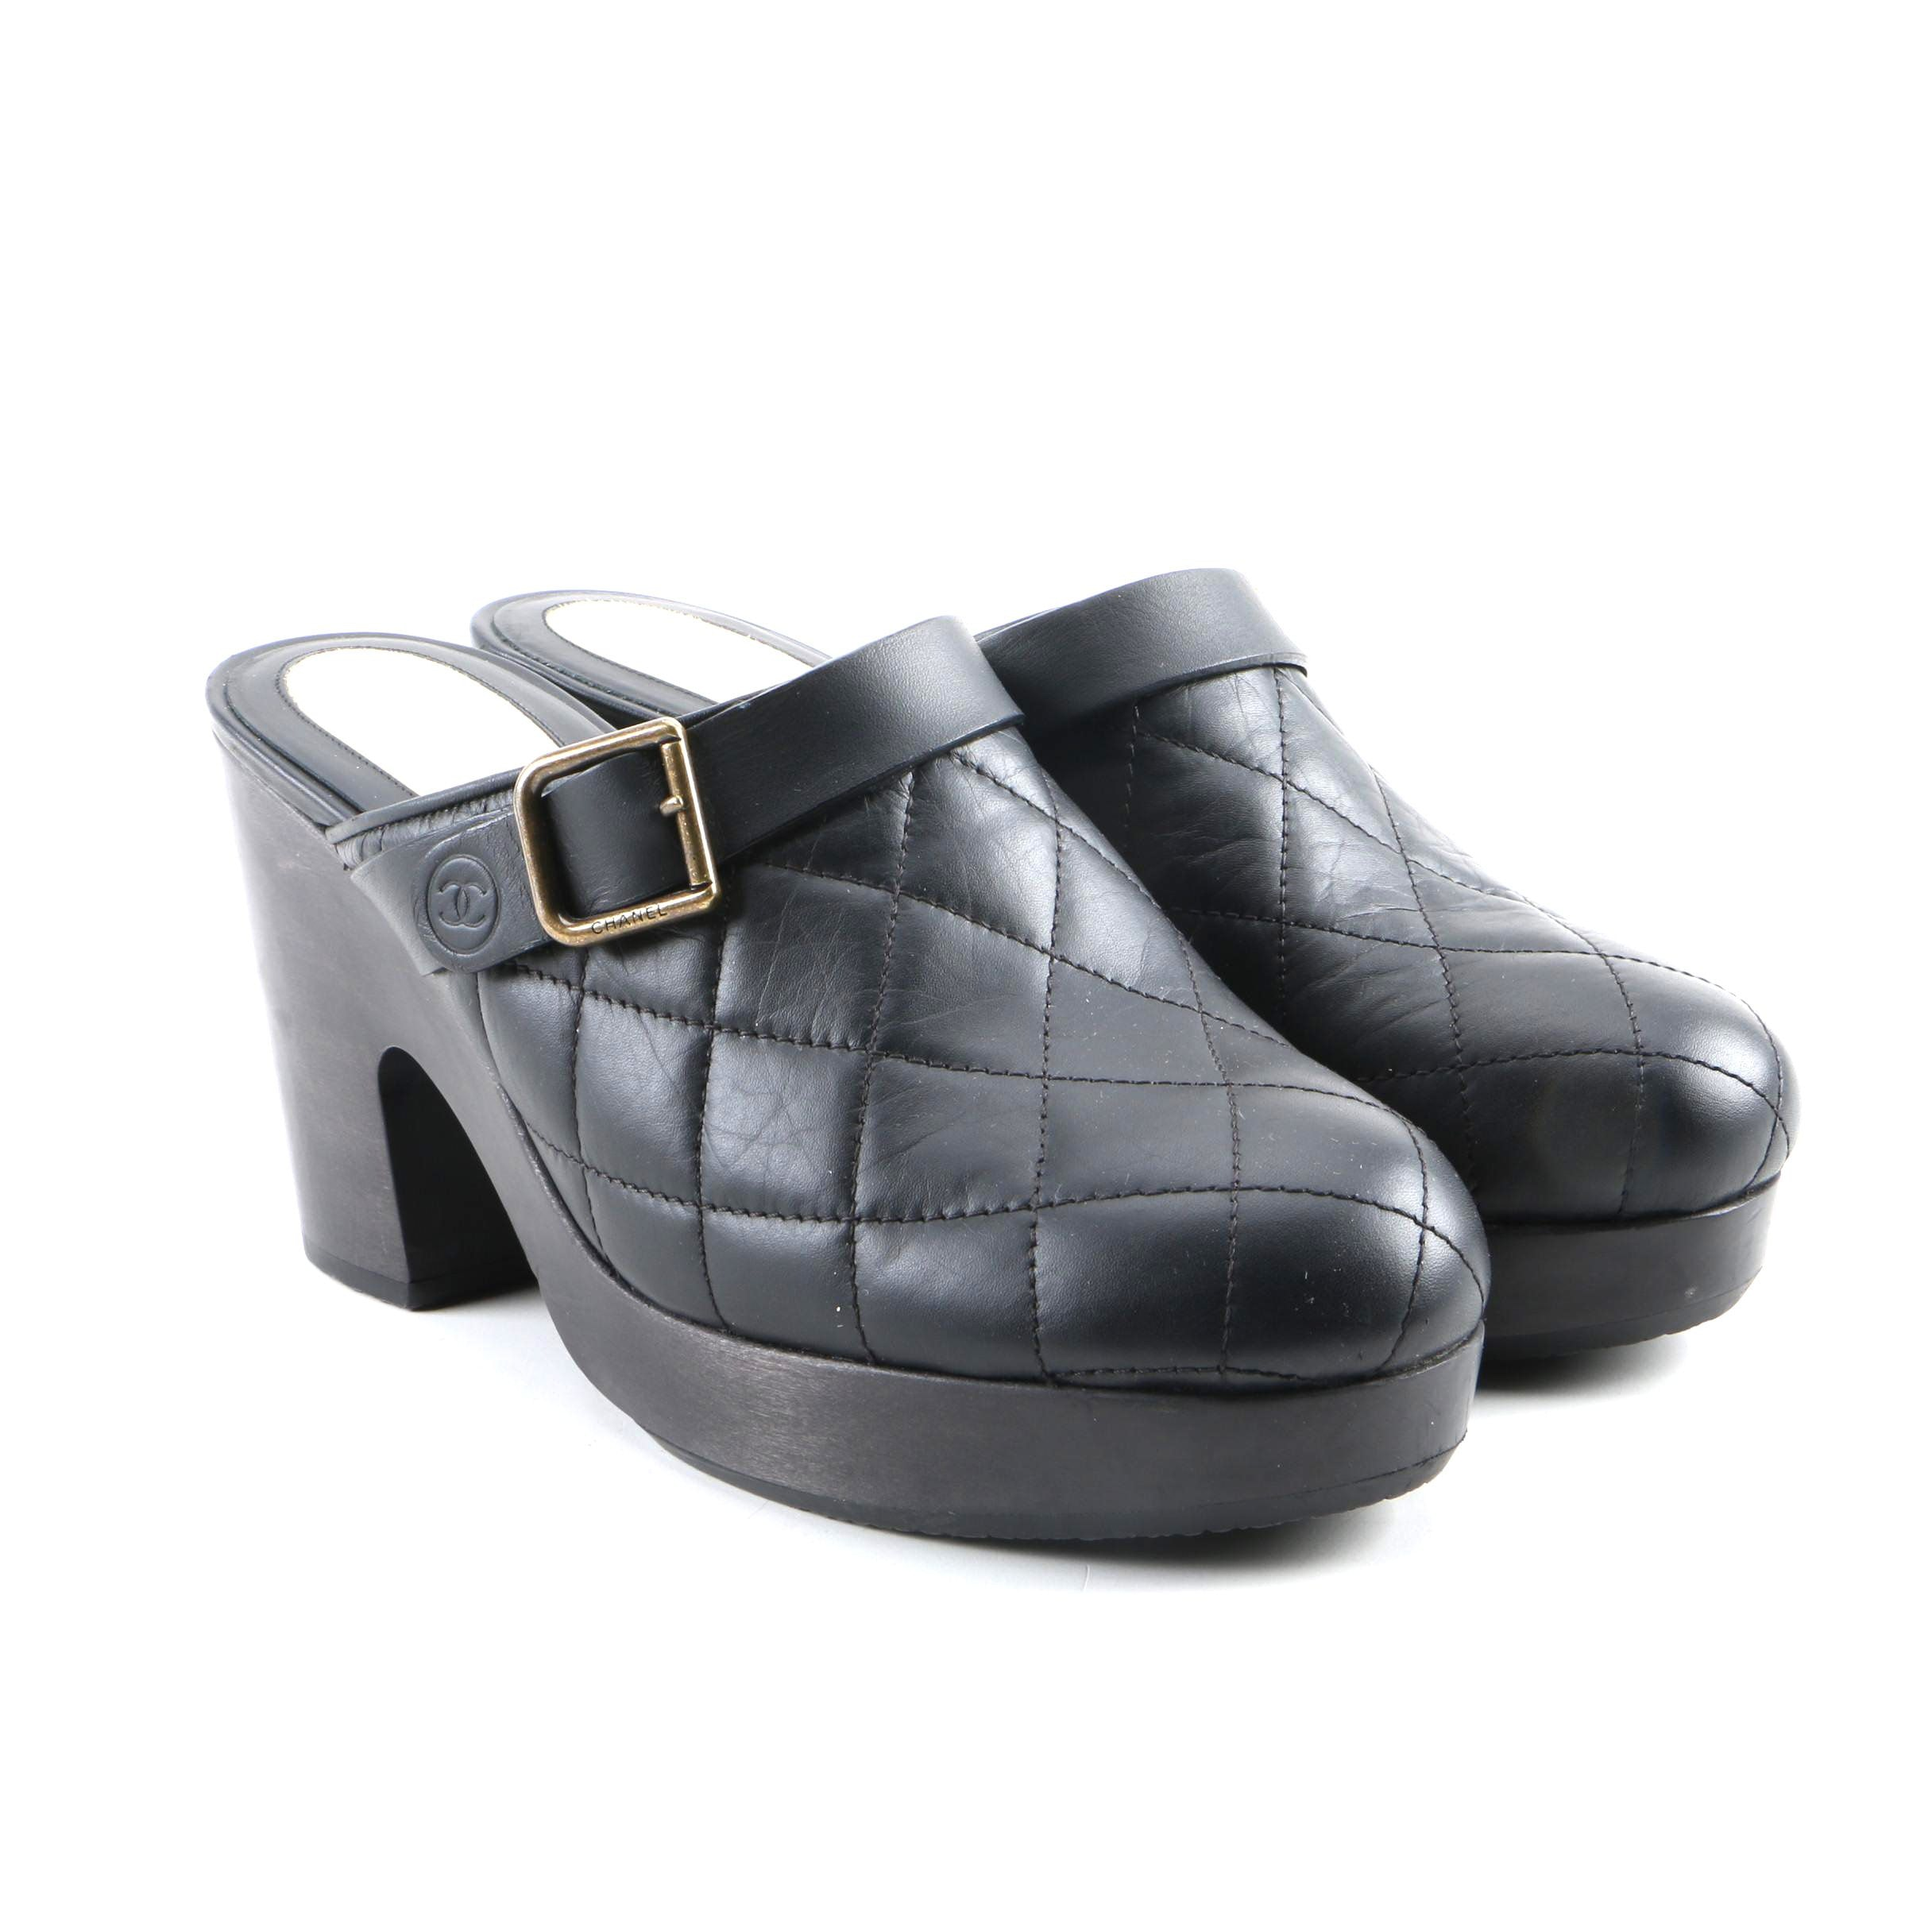 Women's Chanel Black Quilted Leather Platform Clogs